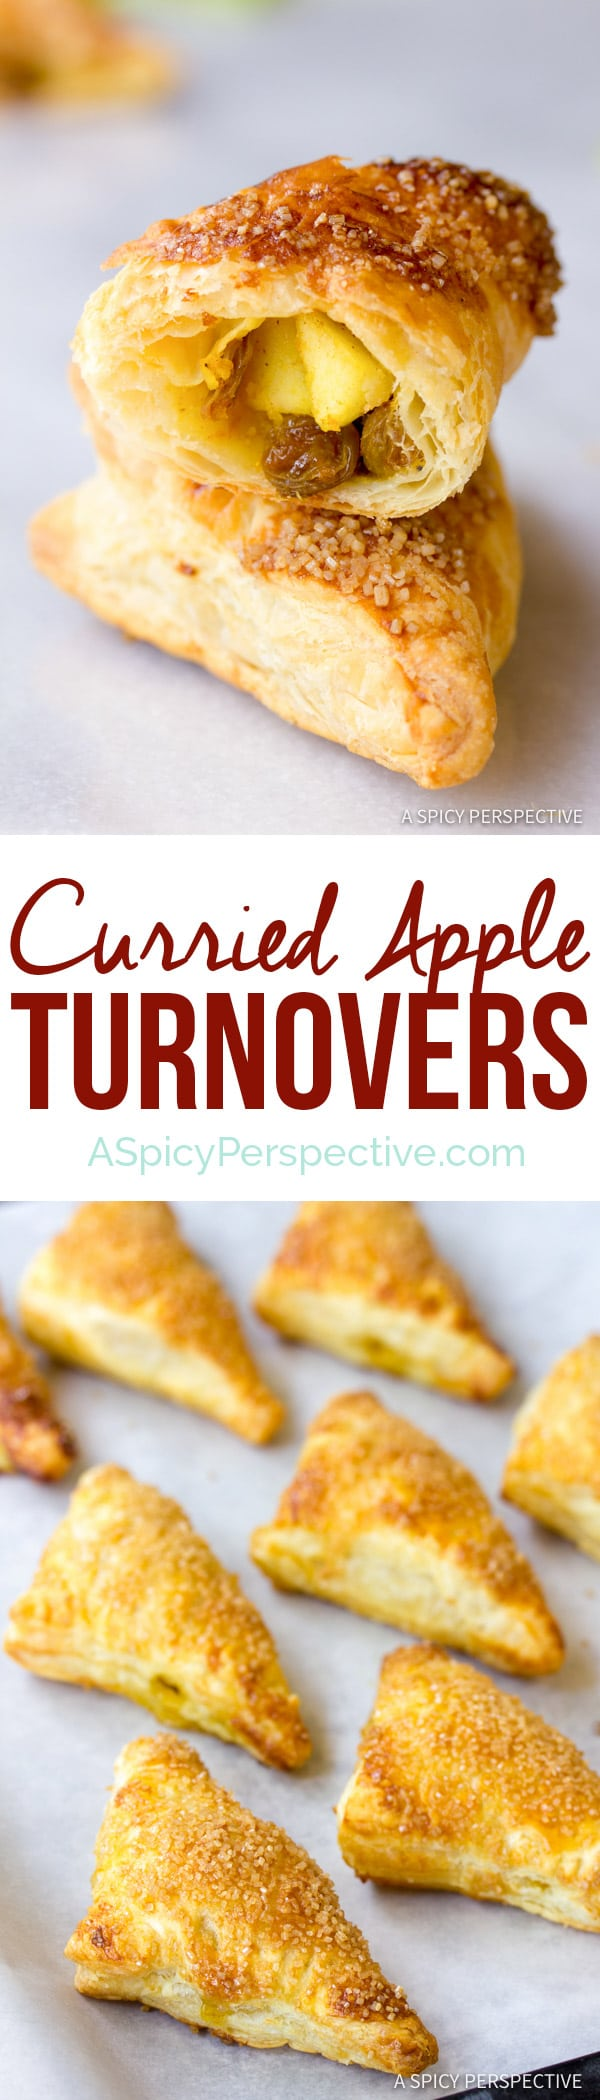 Crispy Sweet Curried Apple Turnovers | ASpicyPerspective.com